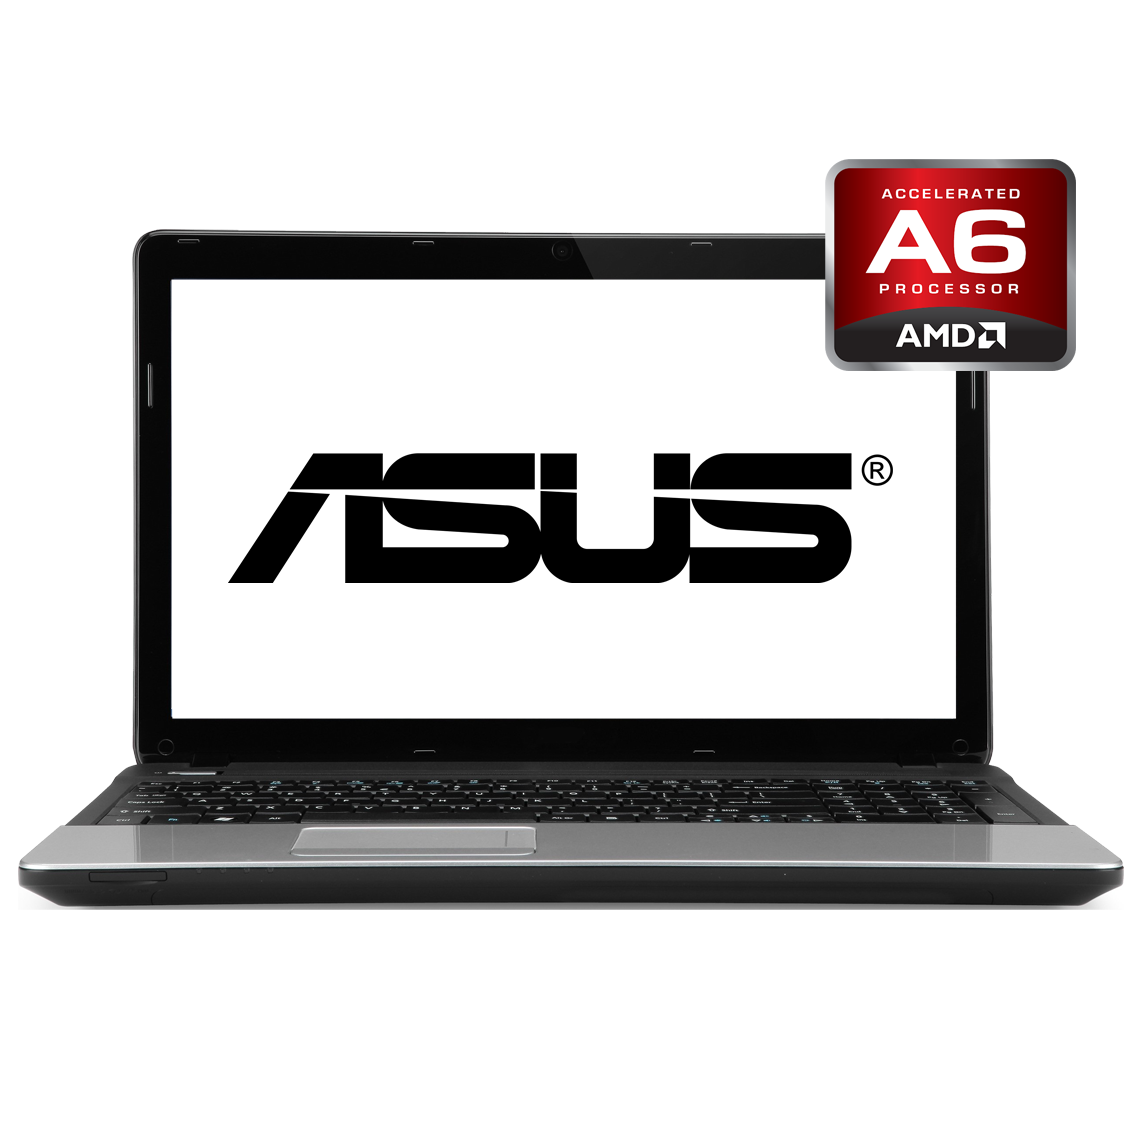 ASUS - 16 inch AMD A6